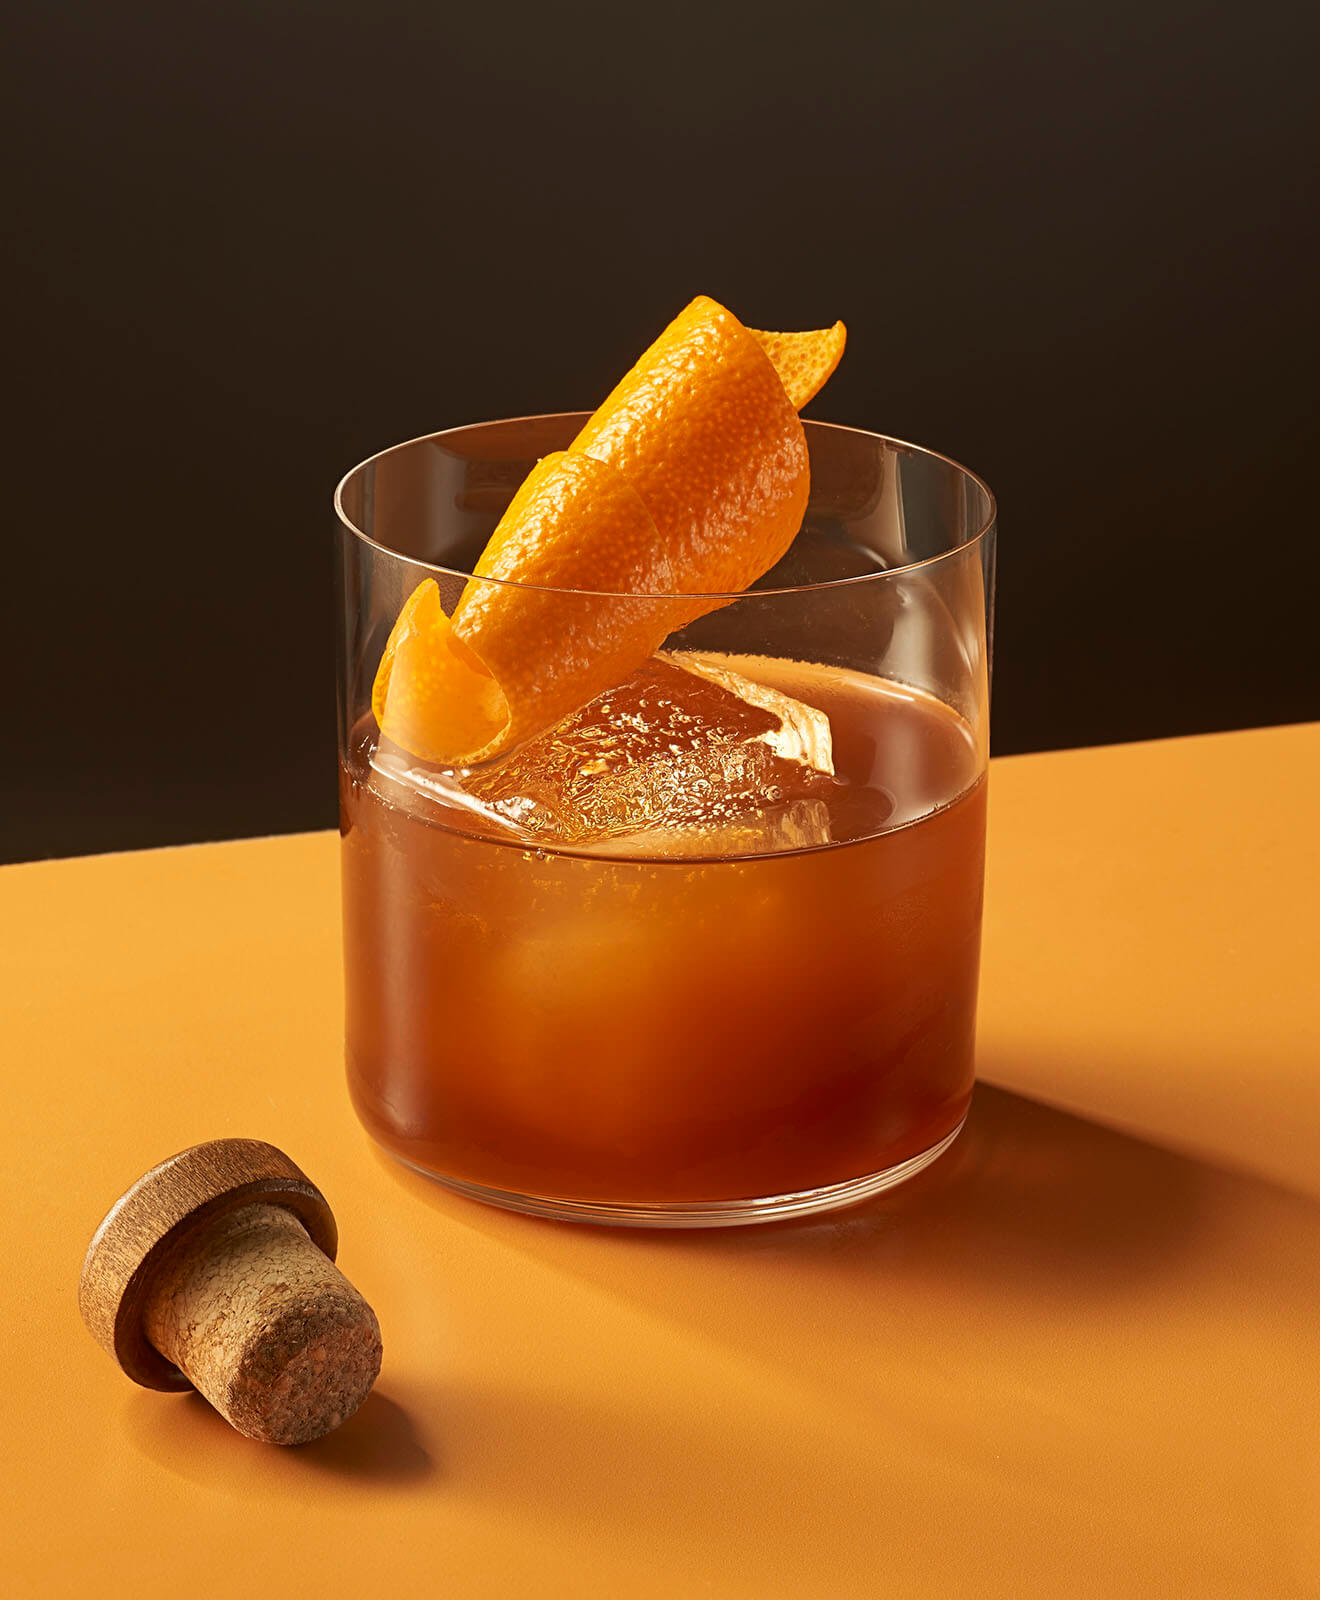 Cold Fashioned Cocktail, rocks glass, cork